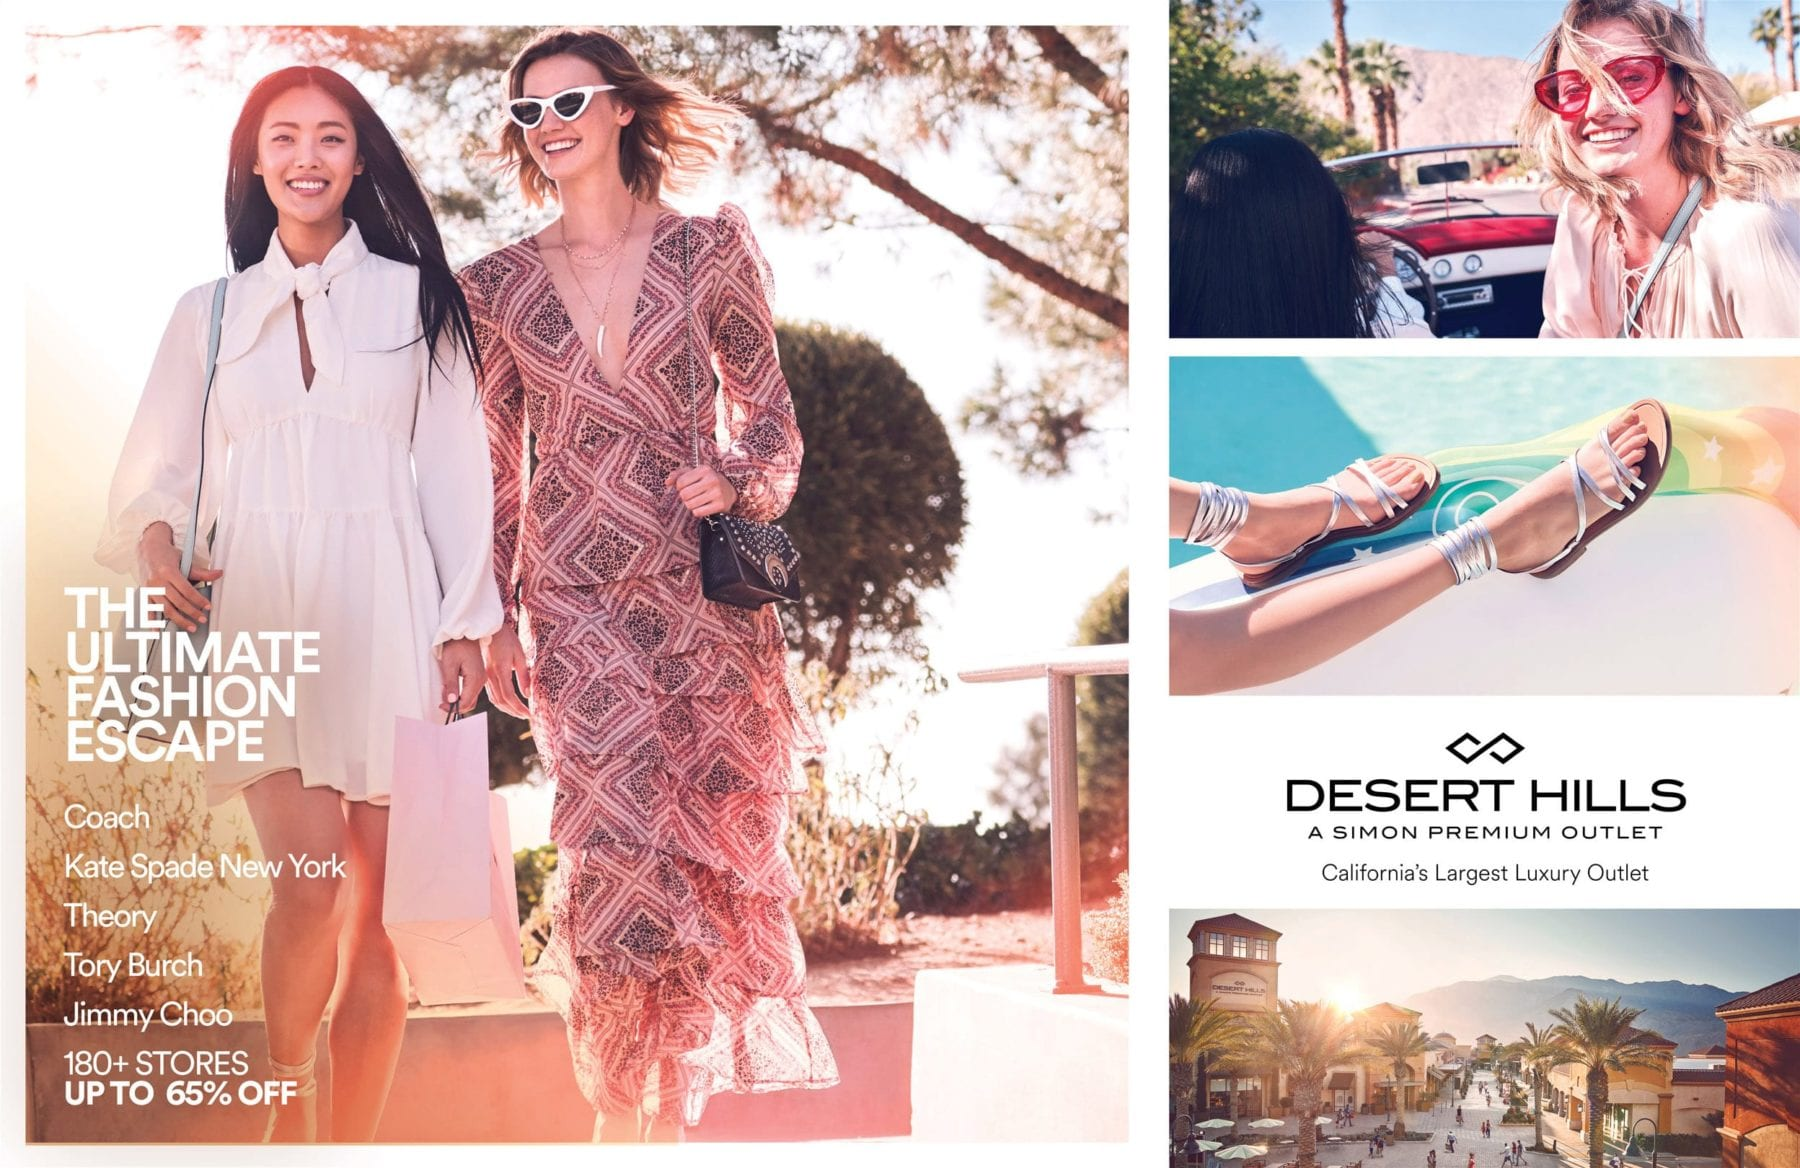 DESERT-HILLS-AD-LAYOUTS-FROM-SHOOT_FOR-WEBSITE-1